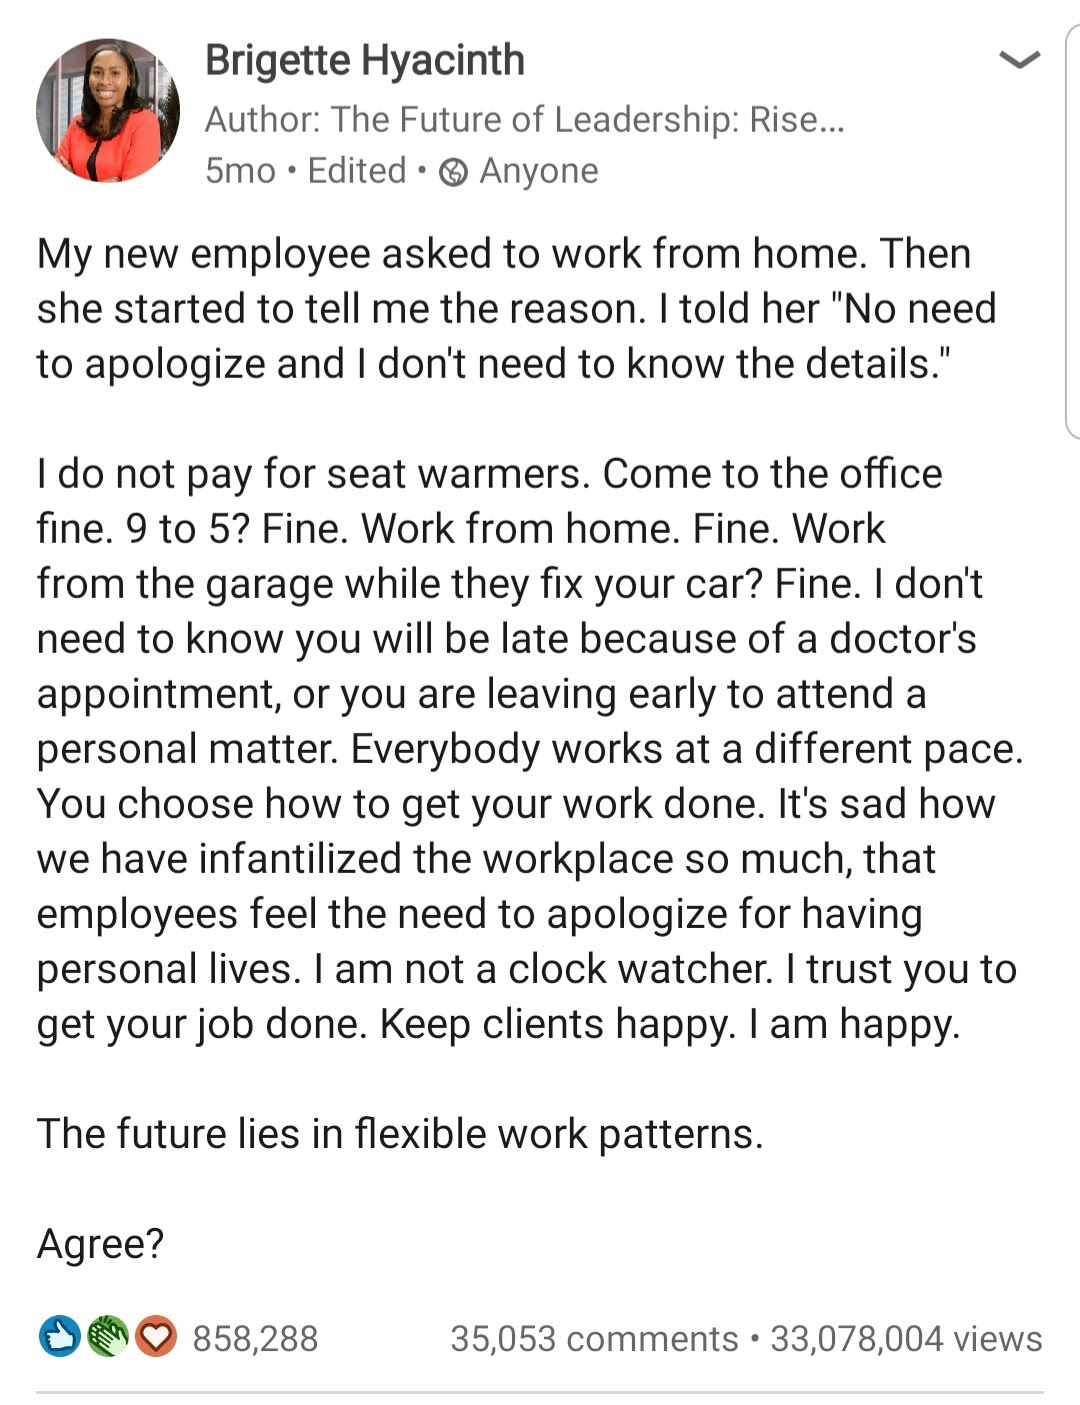 Screenshot of a LinkedIn post from Brigette Hyacinth detailing management with millions of views